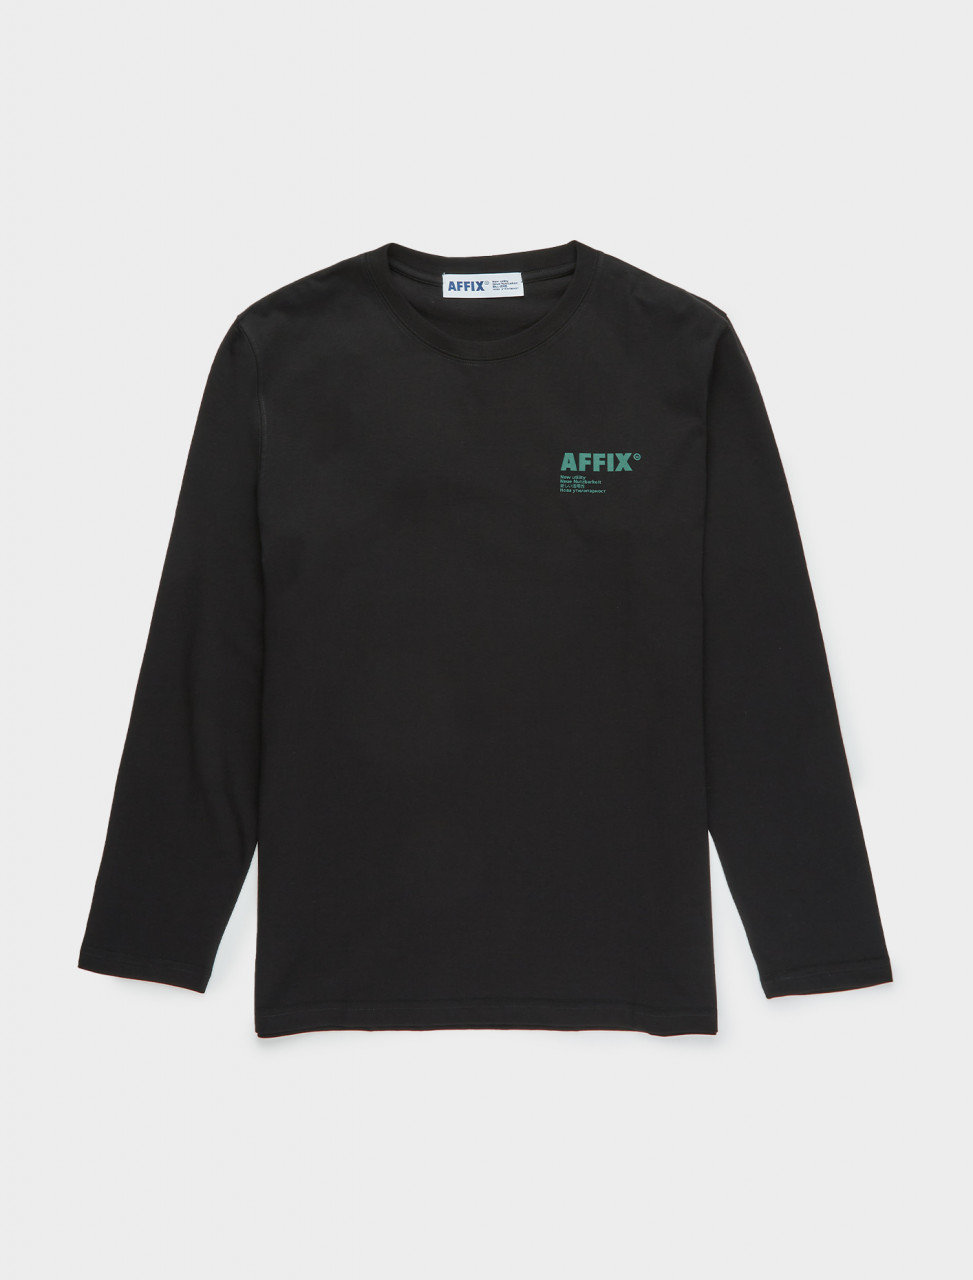 347-AW20TS01-B AFFIX Standardised Logo Long Sleeve T-Shirt in Black